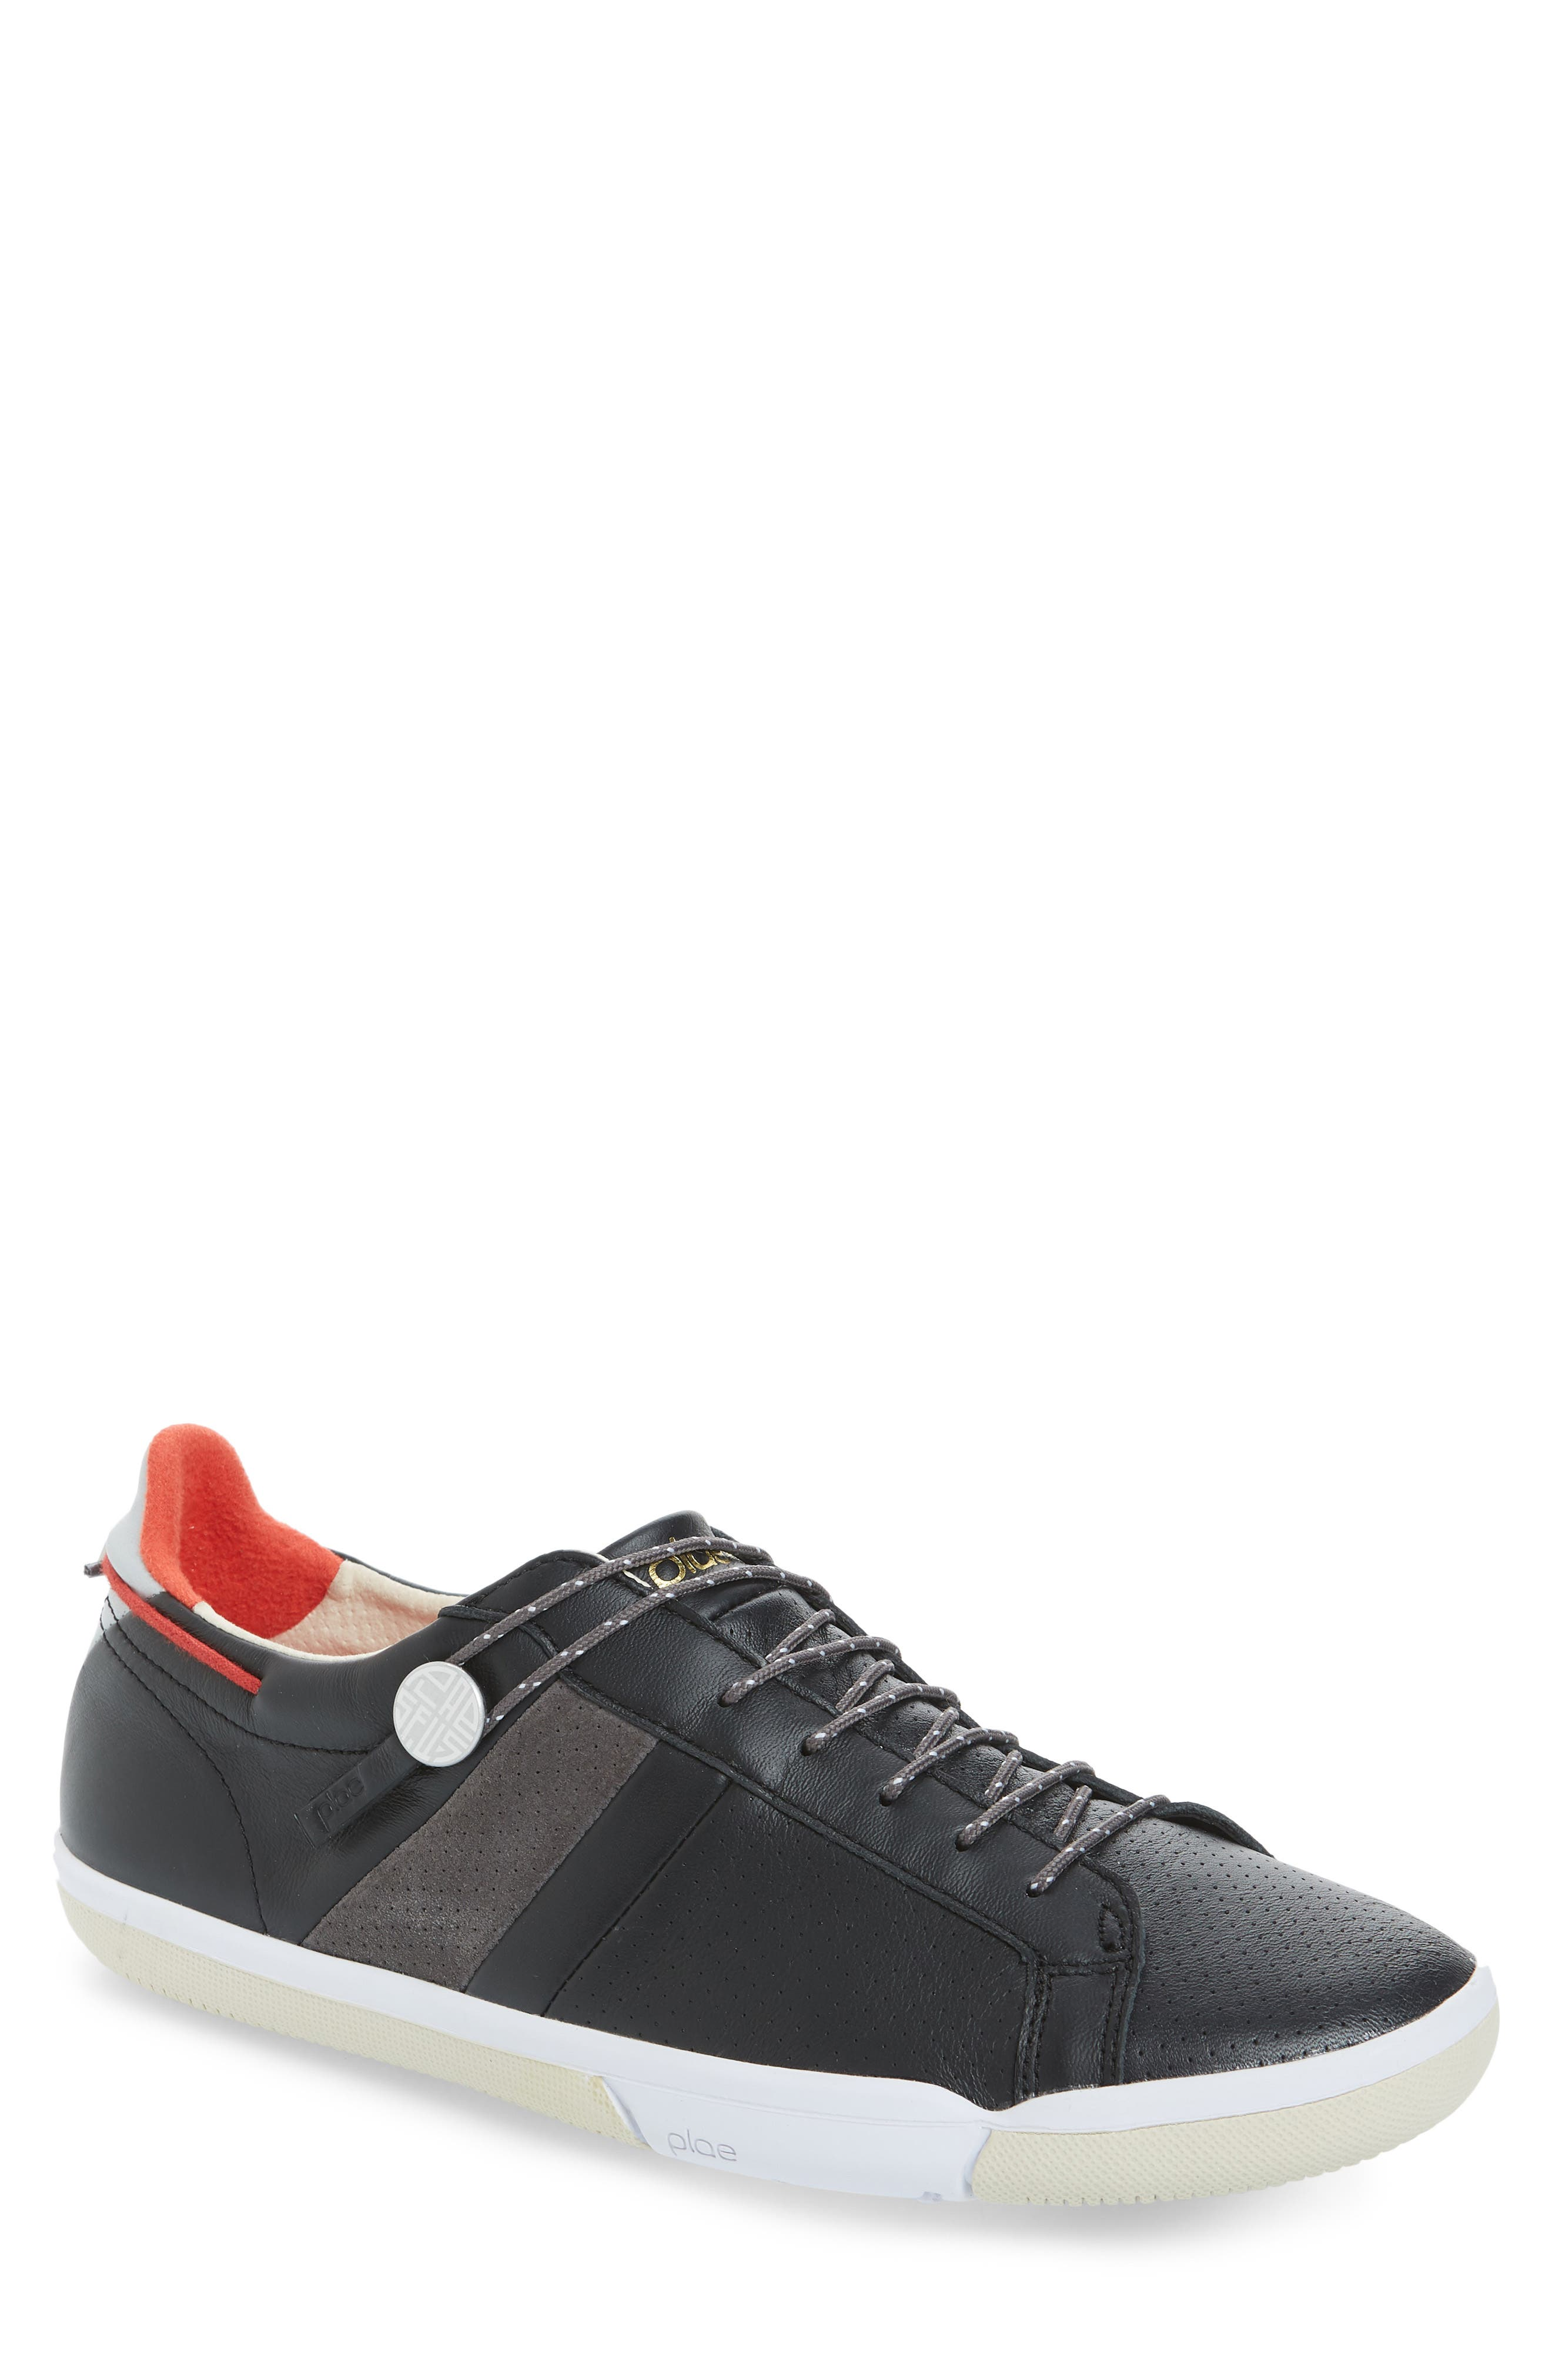 Mulberry Low Top Sneaker,                         Main,                         color, Black